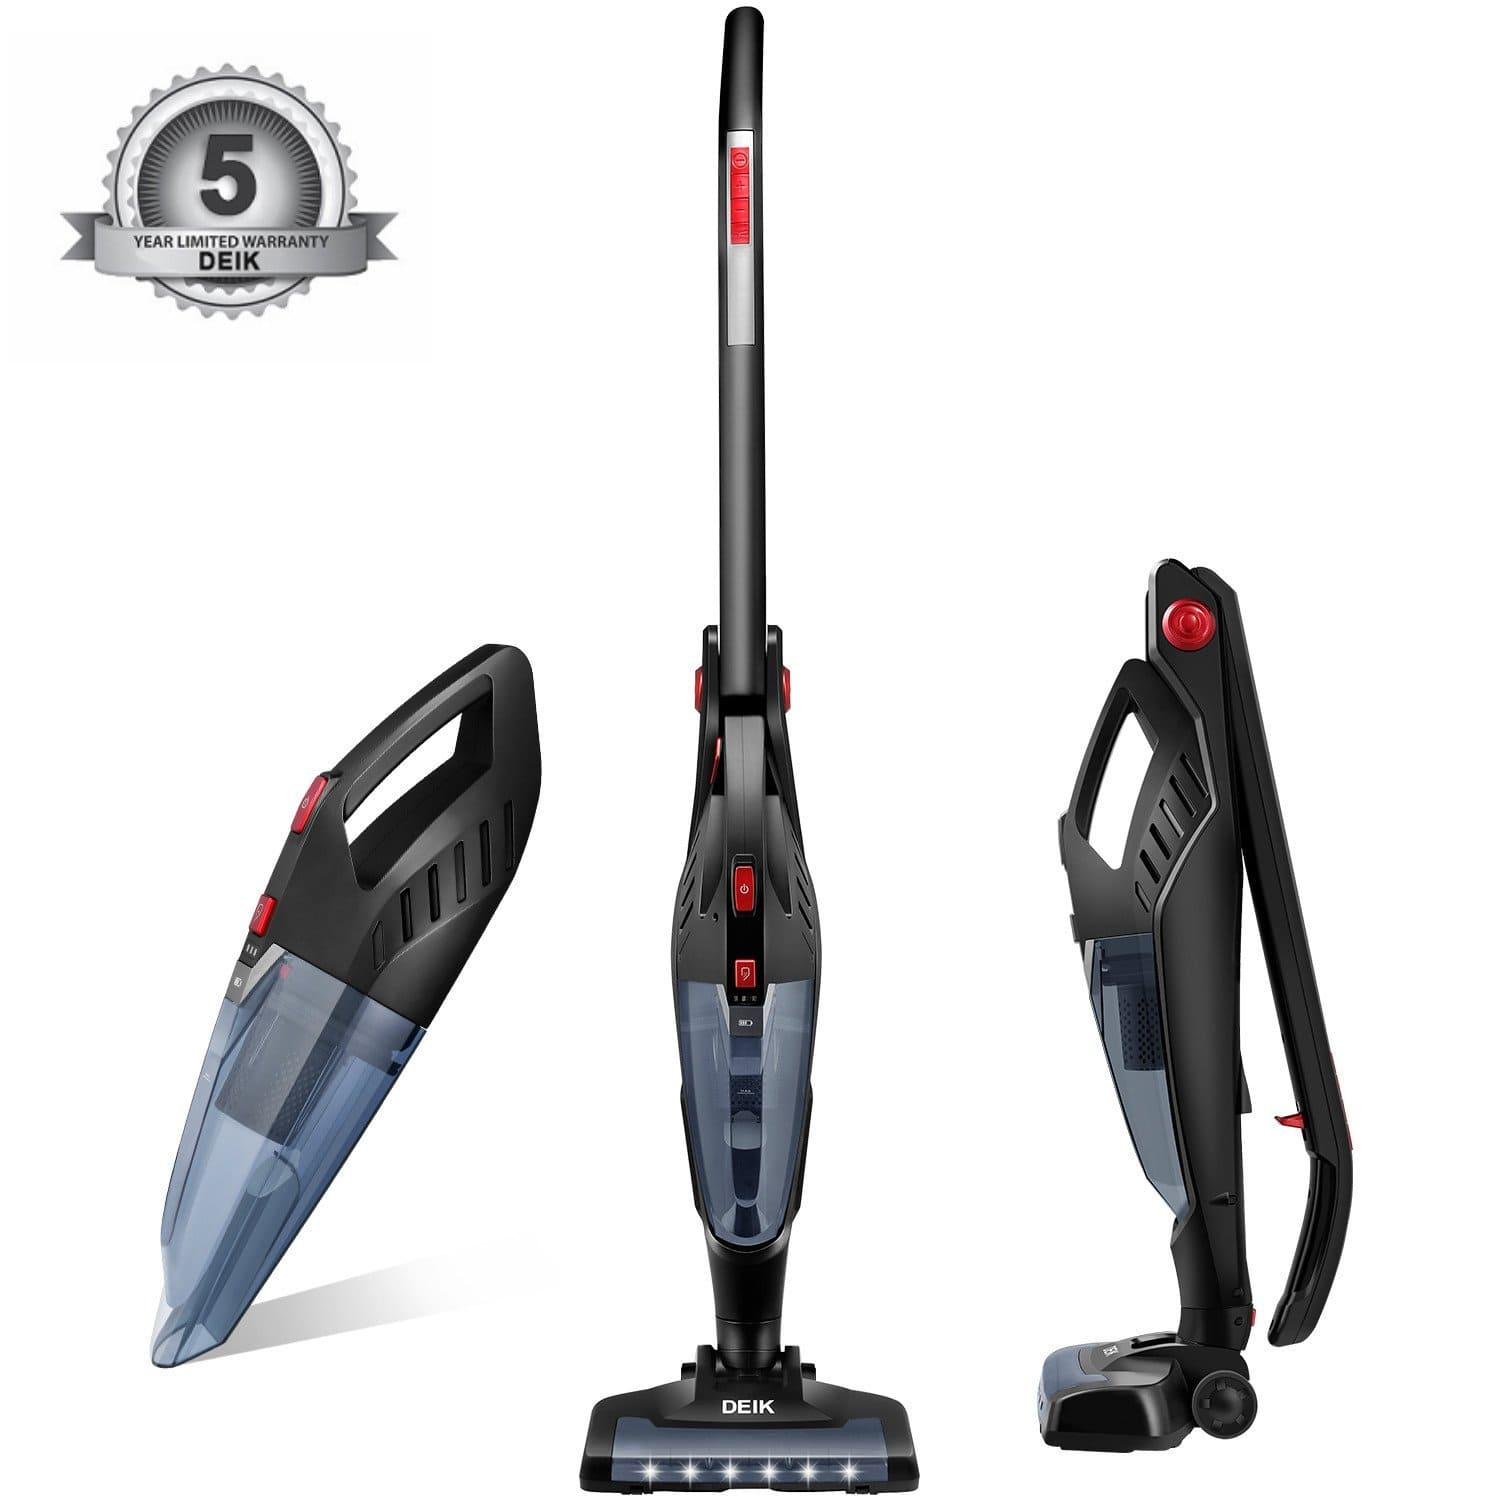 Deik 2 in 1 Cordless Vacuum Cleaner for $68.53 with code + free shipping